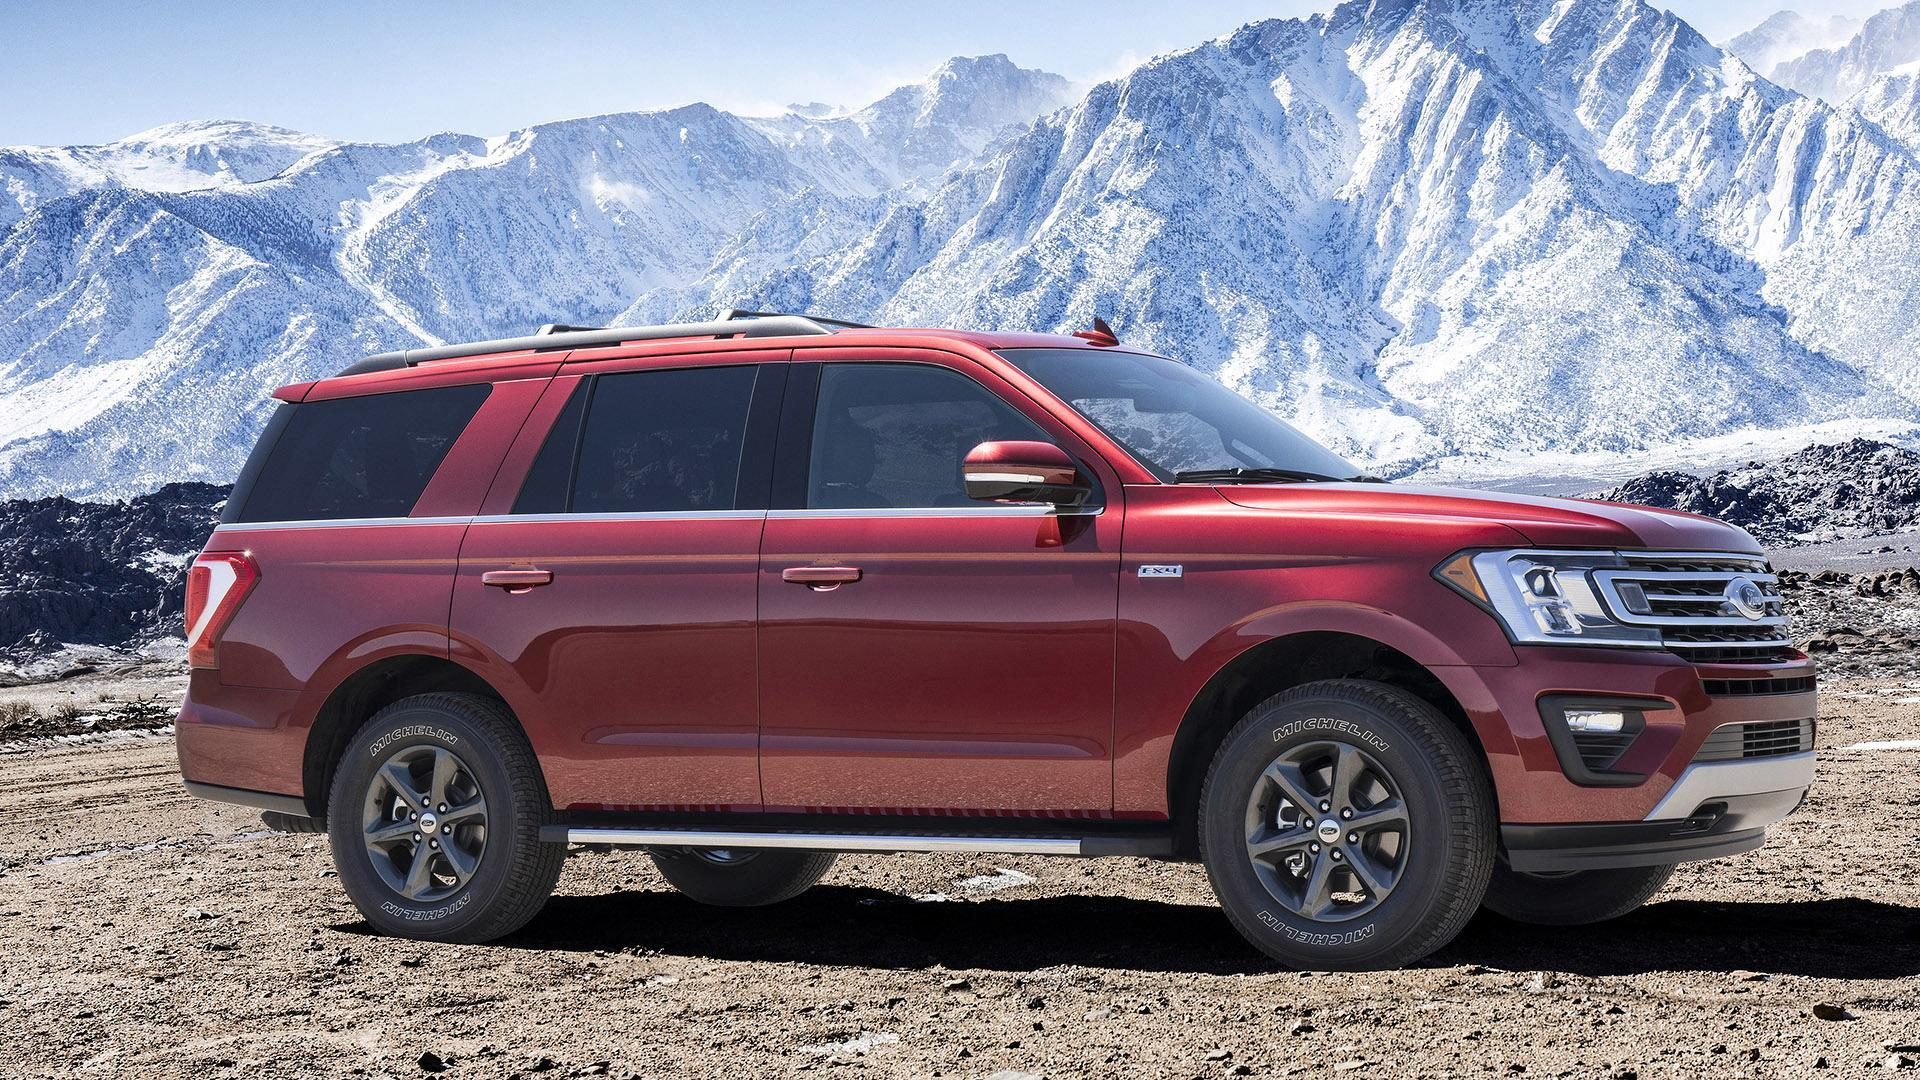 Ford Expedition Smoother Ride More Power And More Comfort Than The  Gmc Yukon